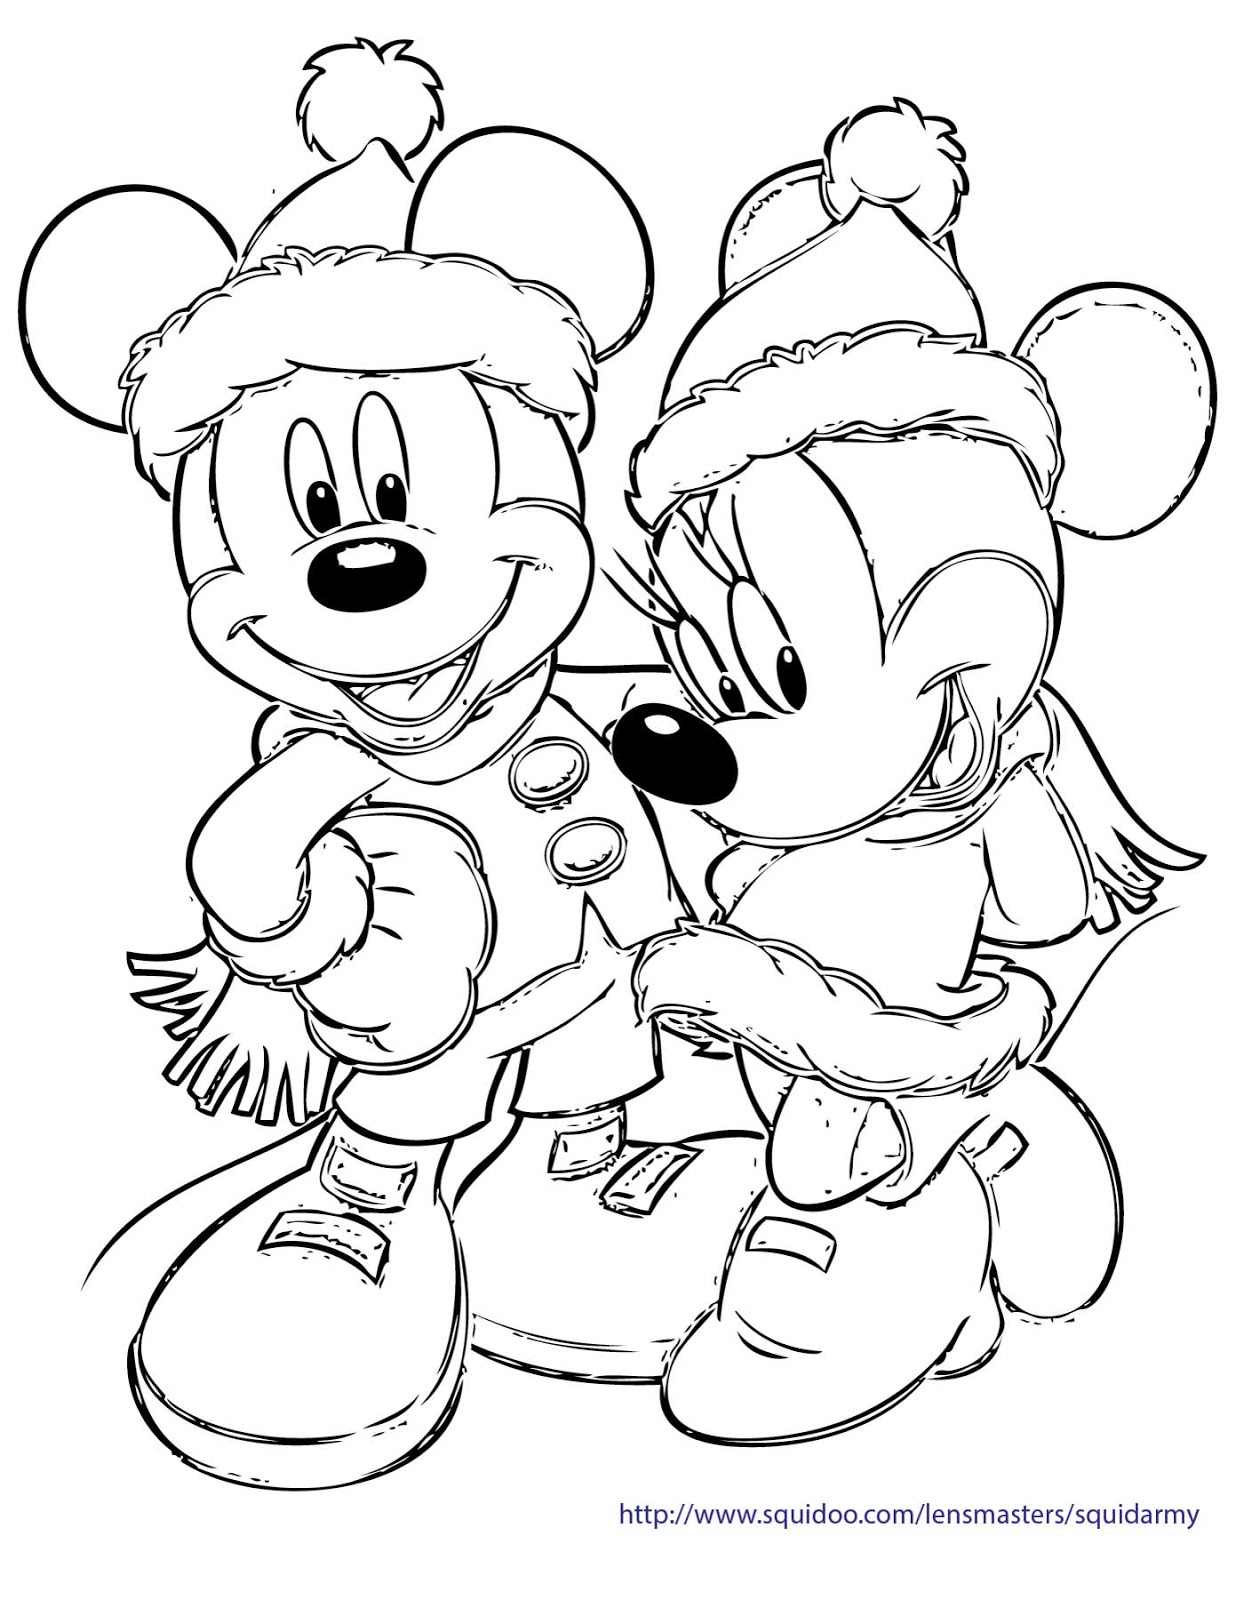 Free Mickey And Minnie Coloring Pages At Getdrawings Com Free For